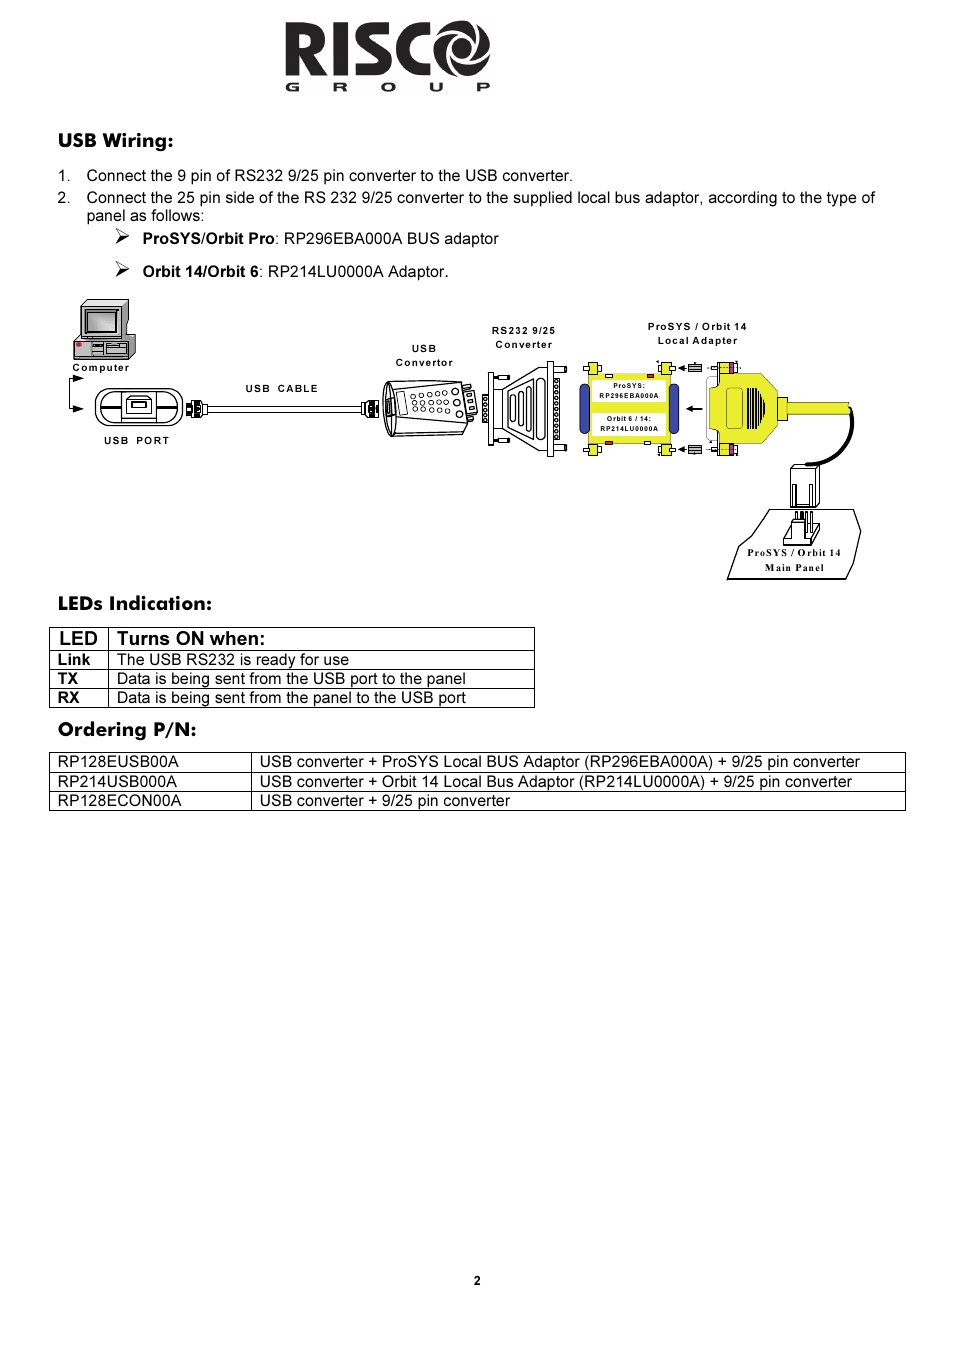 Usb Wiring Leds Indication Led Turns On When Ordering P N Risco Orbit Diagram Group Adaptor User Manual Page 2 8